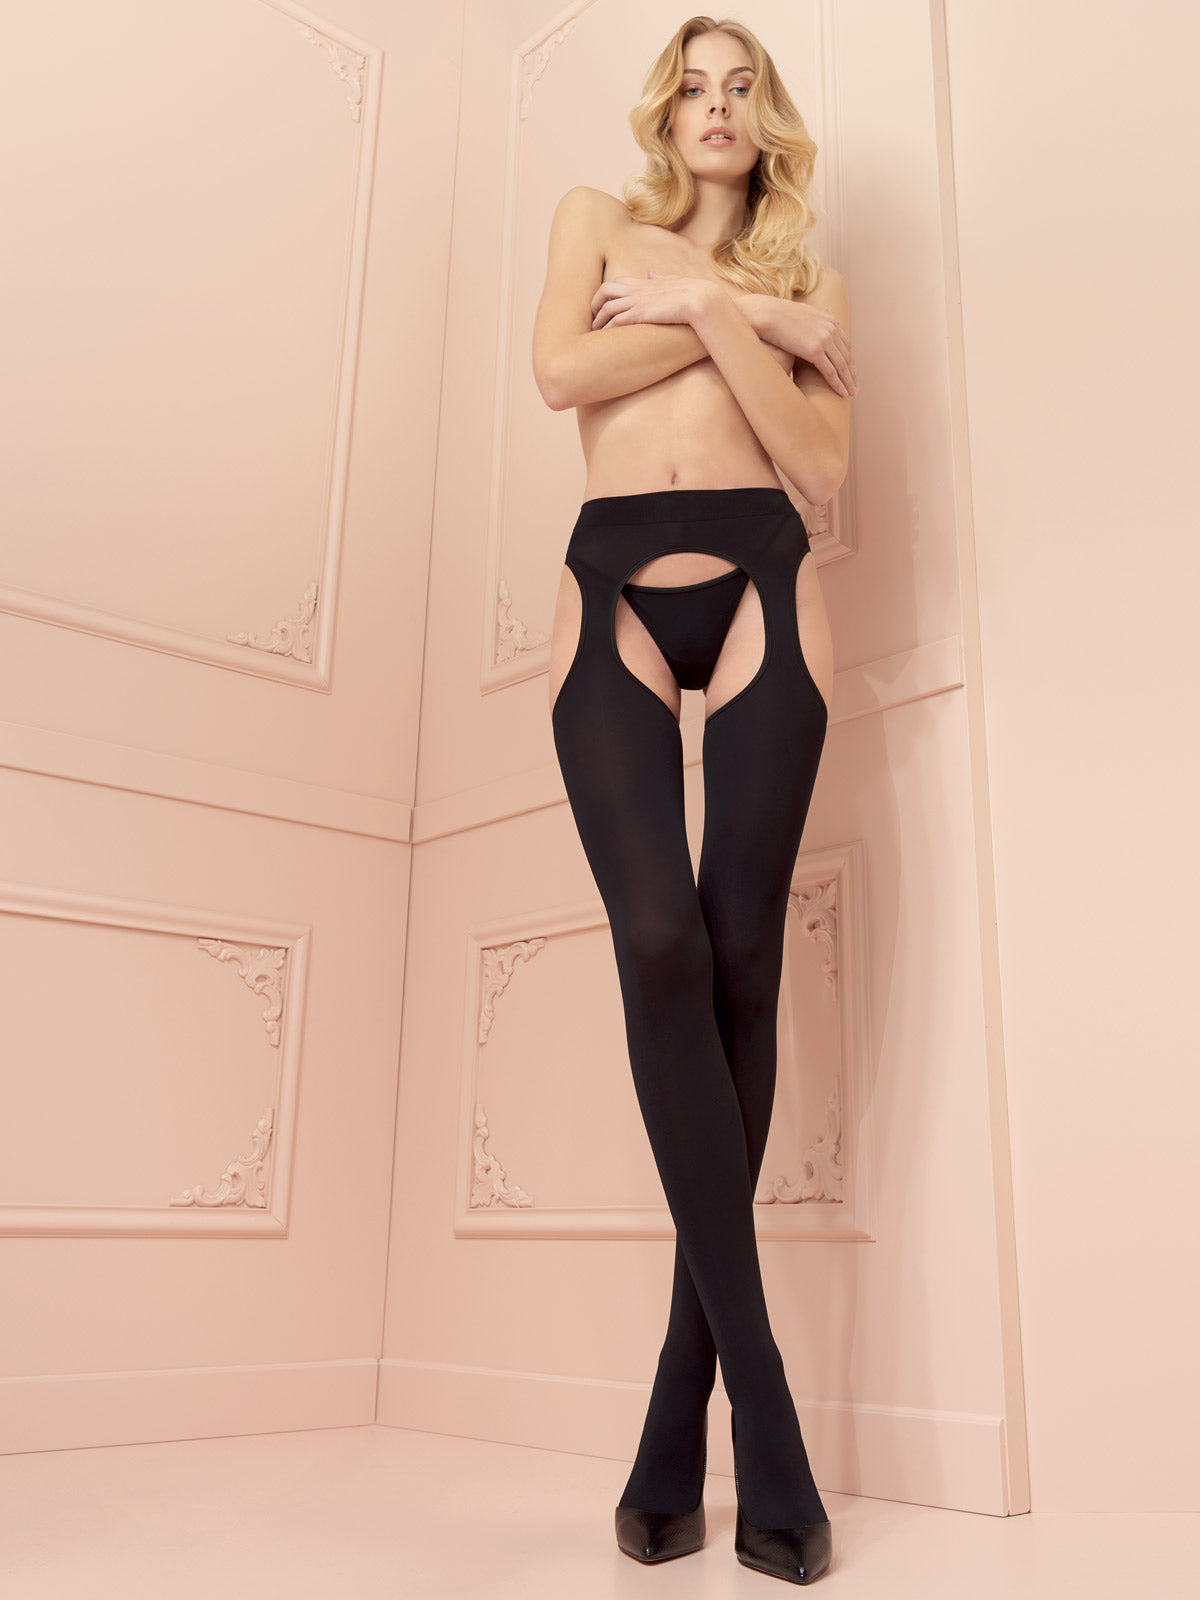 Trasparenze Cortina Strip Pantyhose